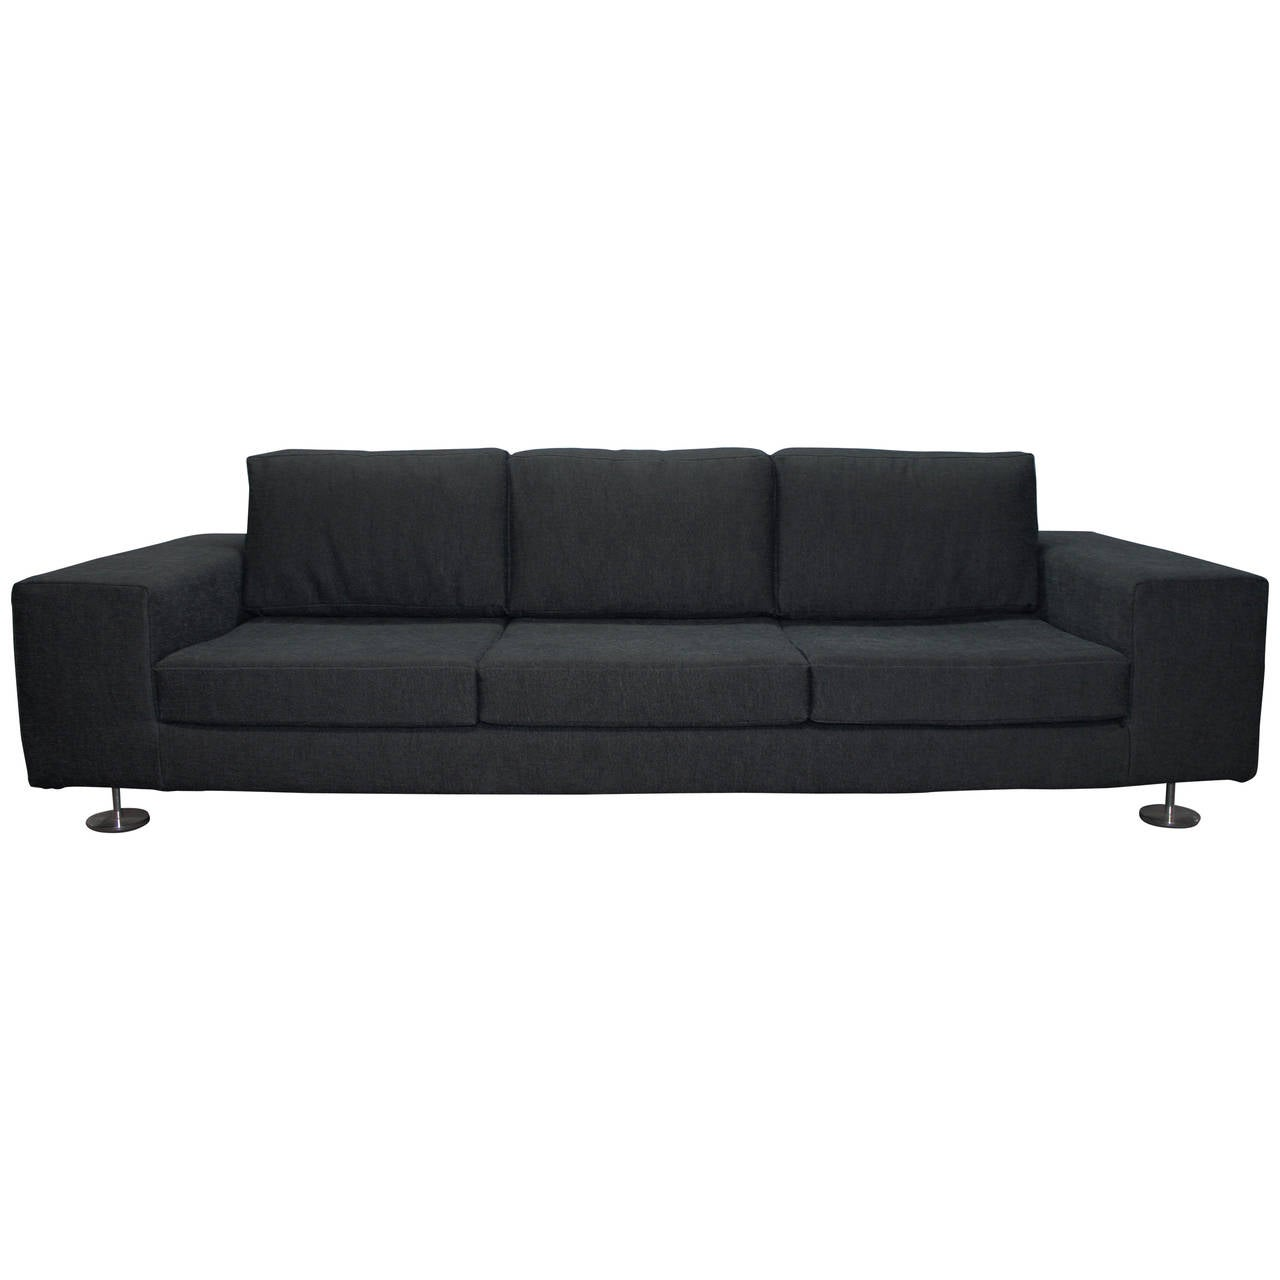 Long low and sleek italian sofa in a woven charcoal for Long couches for sale